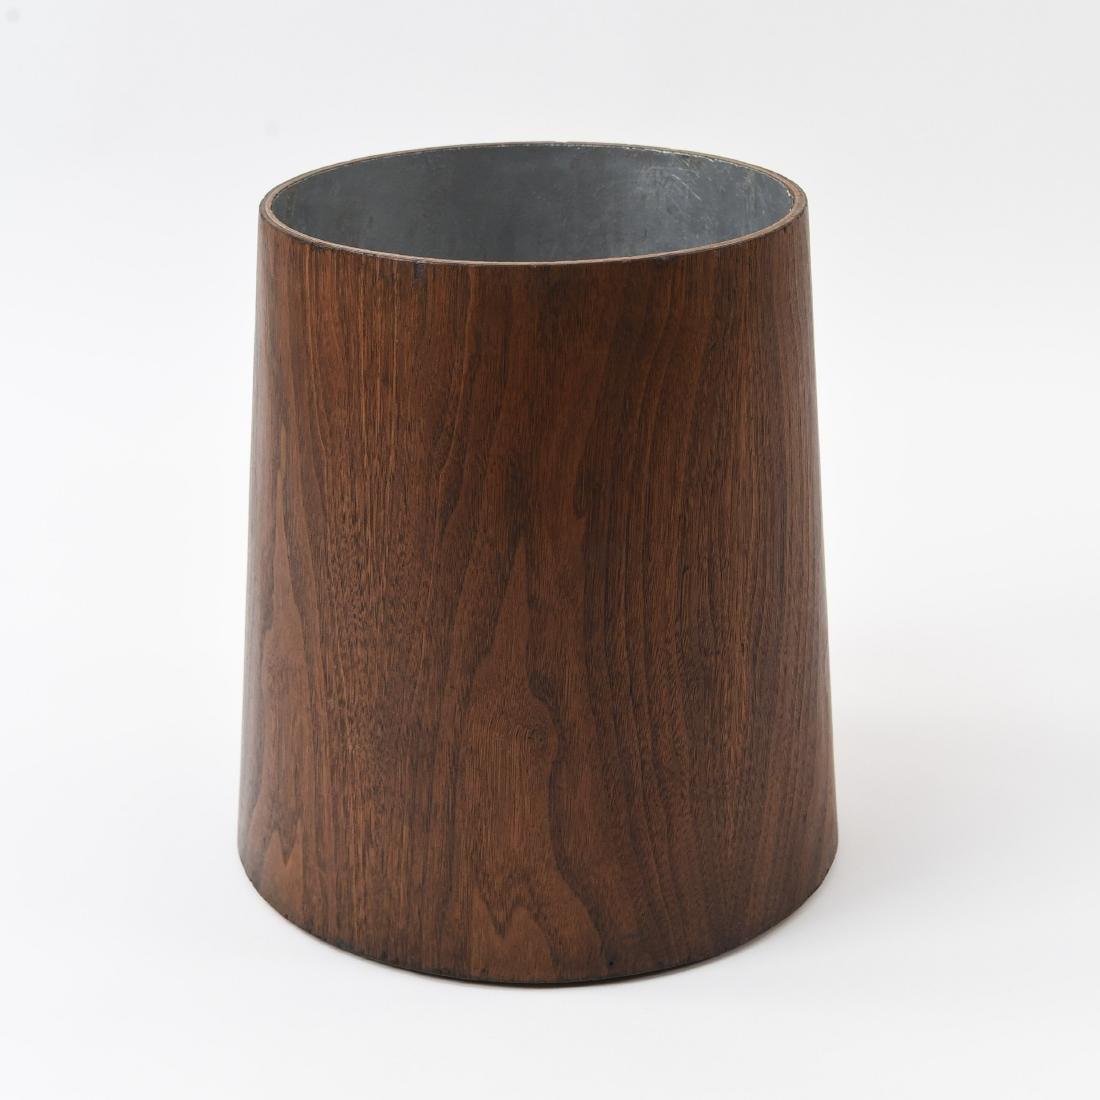 JENS RISOM REVERSE TAPERED WALNUT WASTE BASKET